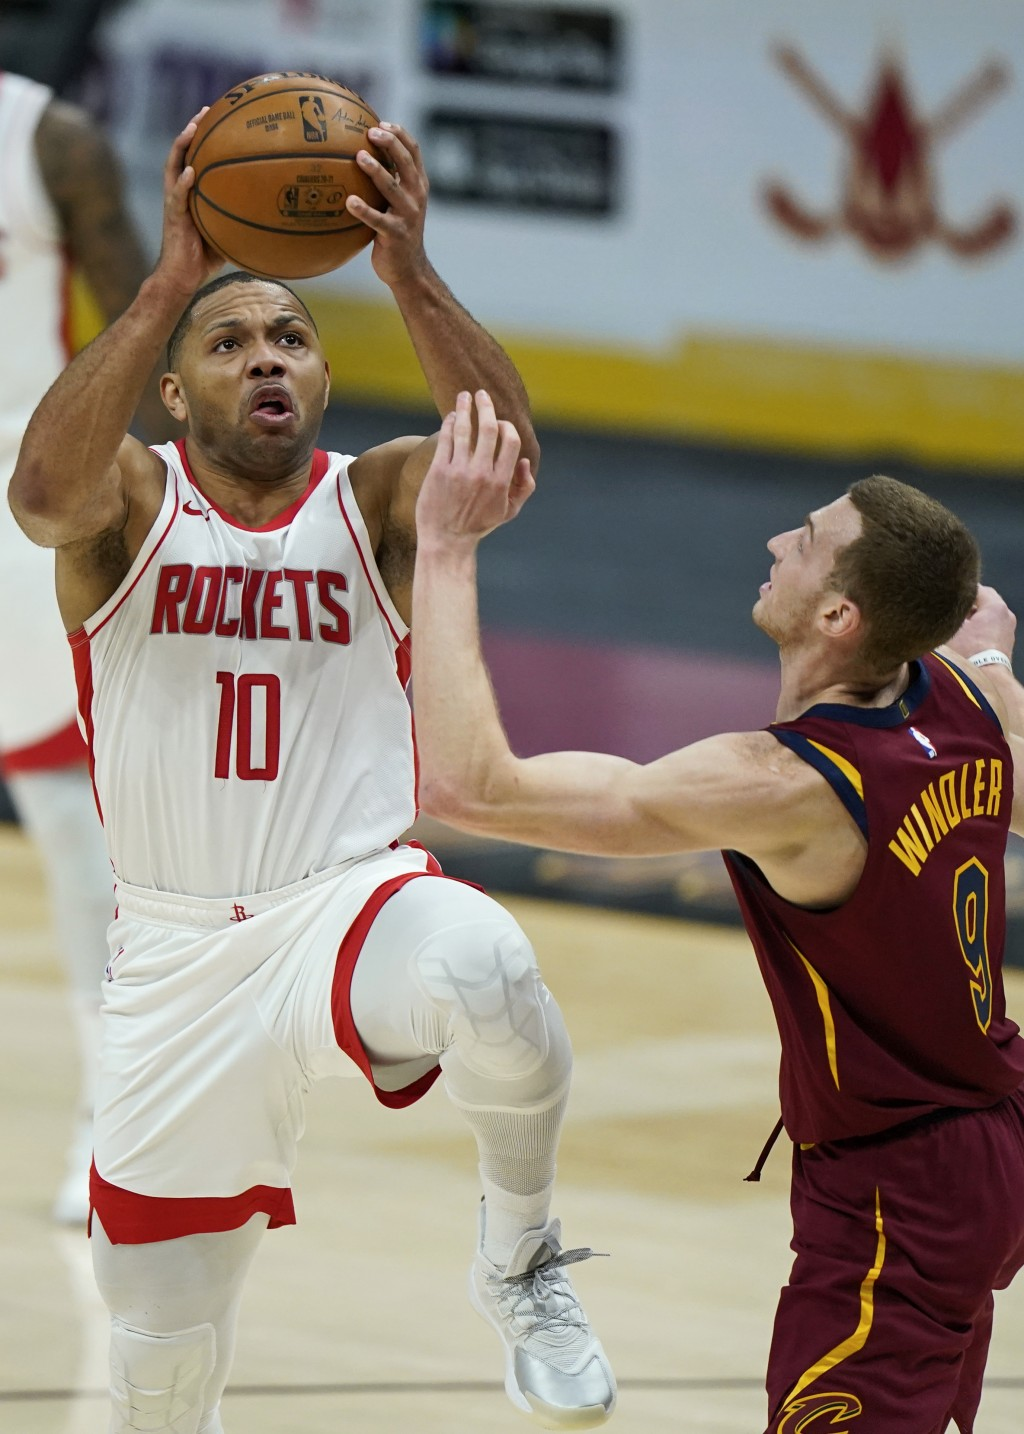 Houston Rockets' Eric Gordon (10) drives to the basket against Cleveland Cavaliers' Dylan Windler (9) in the second half of an NBA basketball game, We...